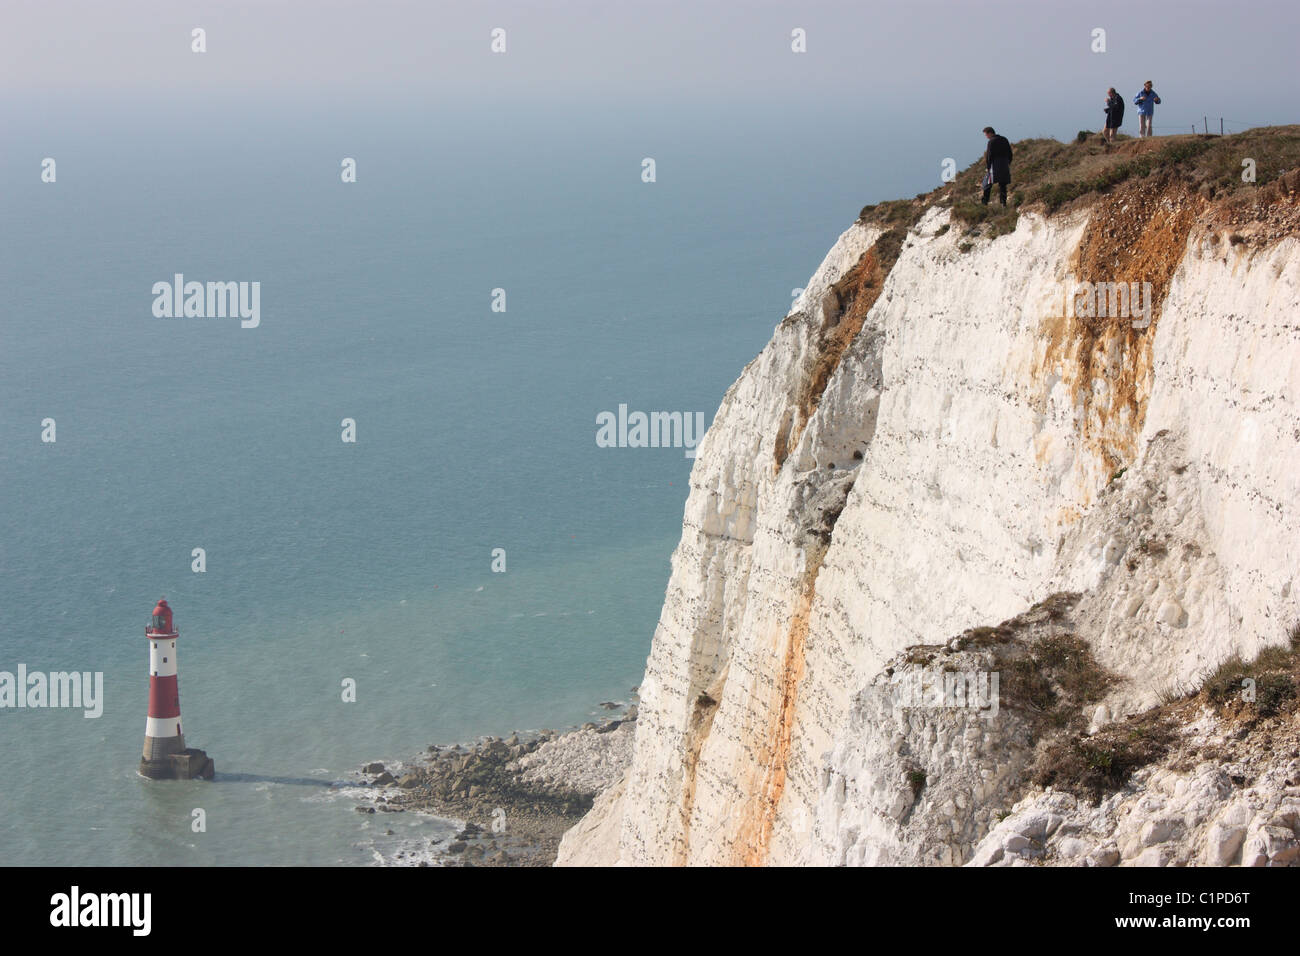 England, Beachy Head, people on top of white cliff with lighthouse below - Stock Image